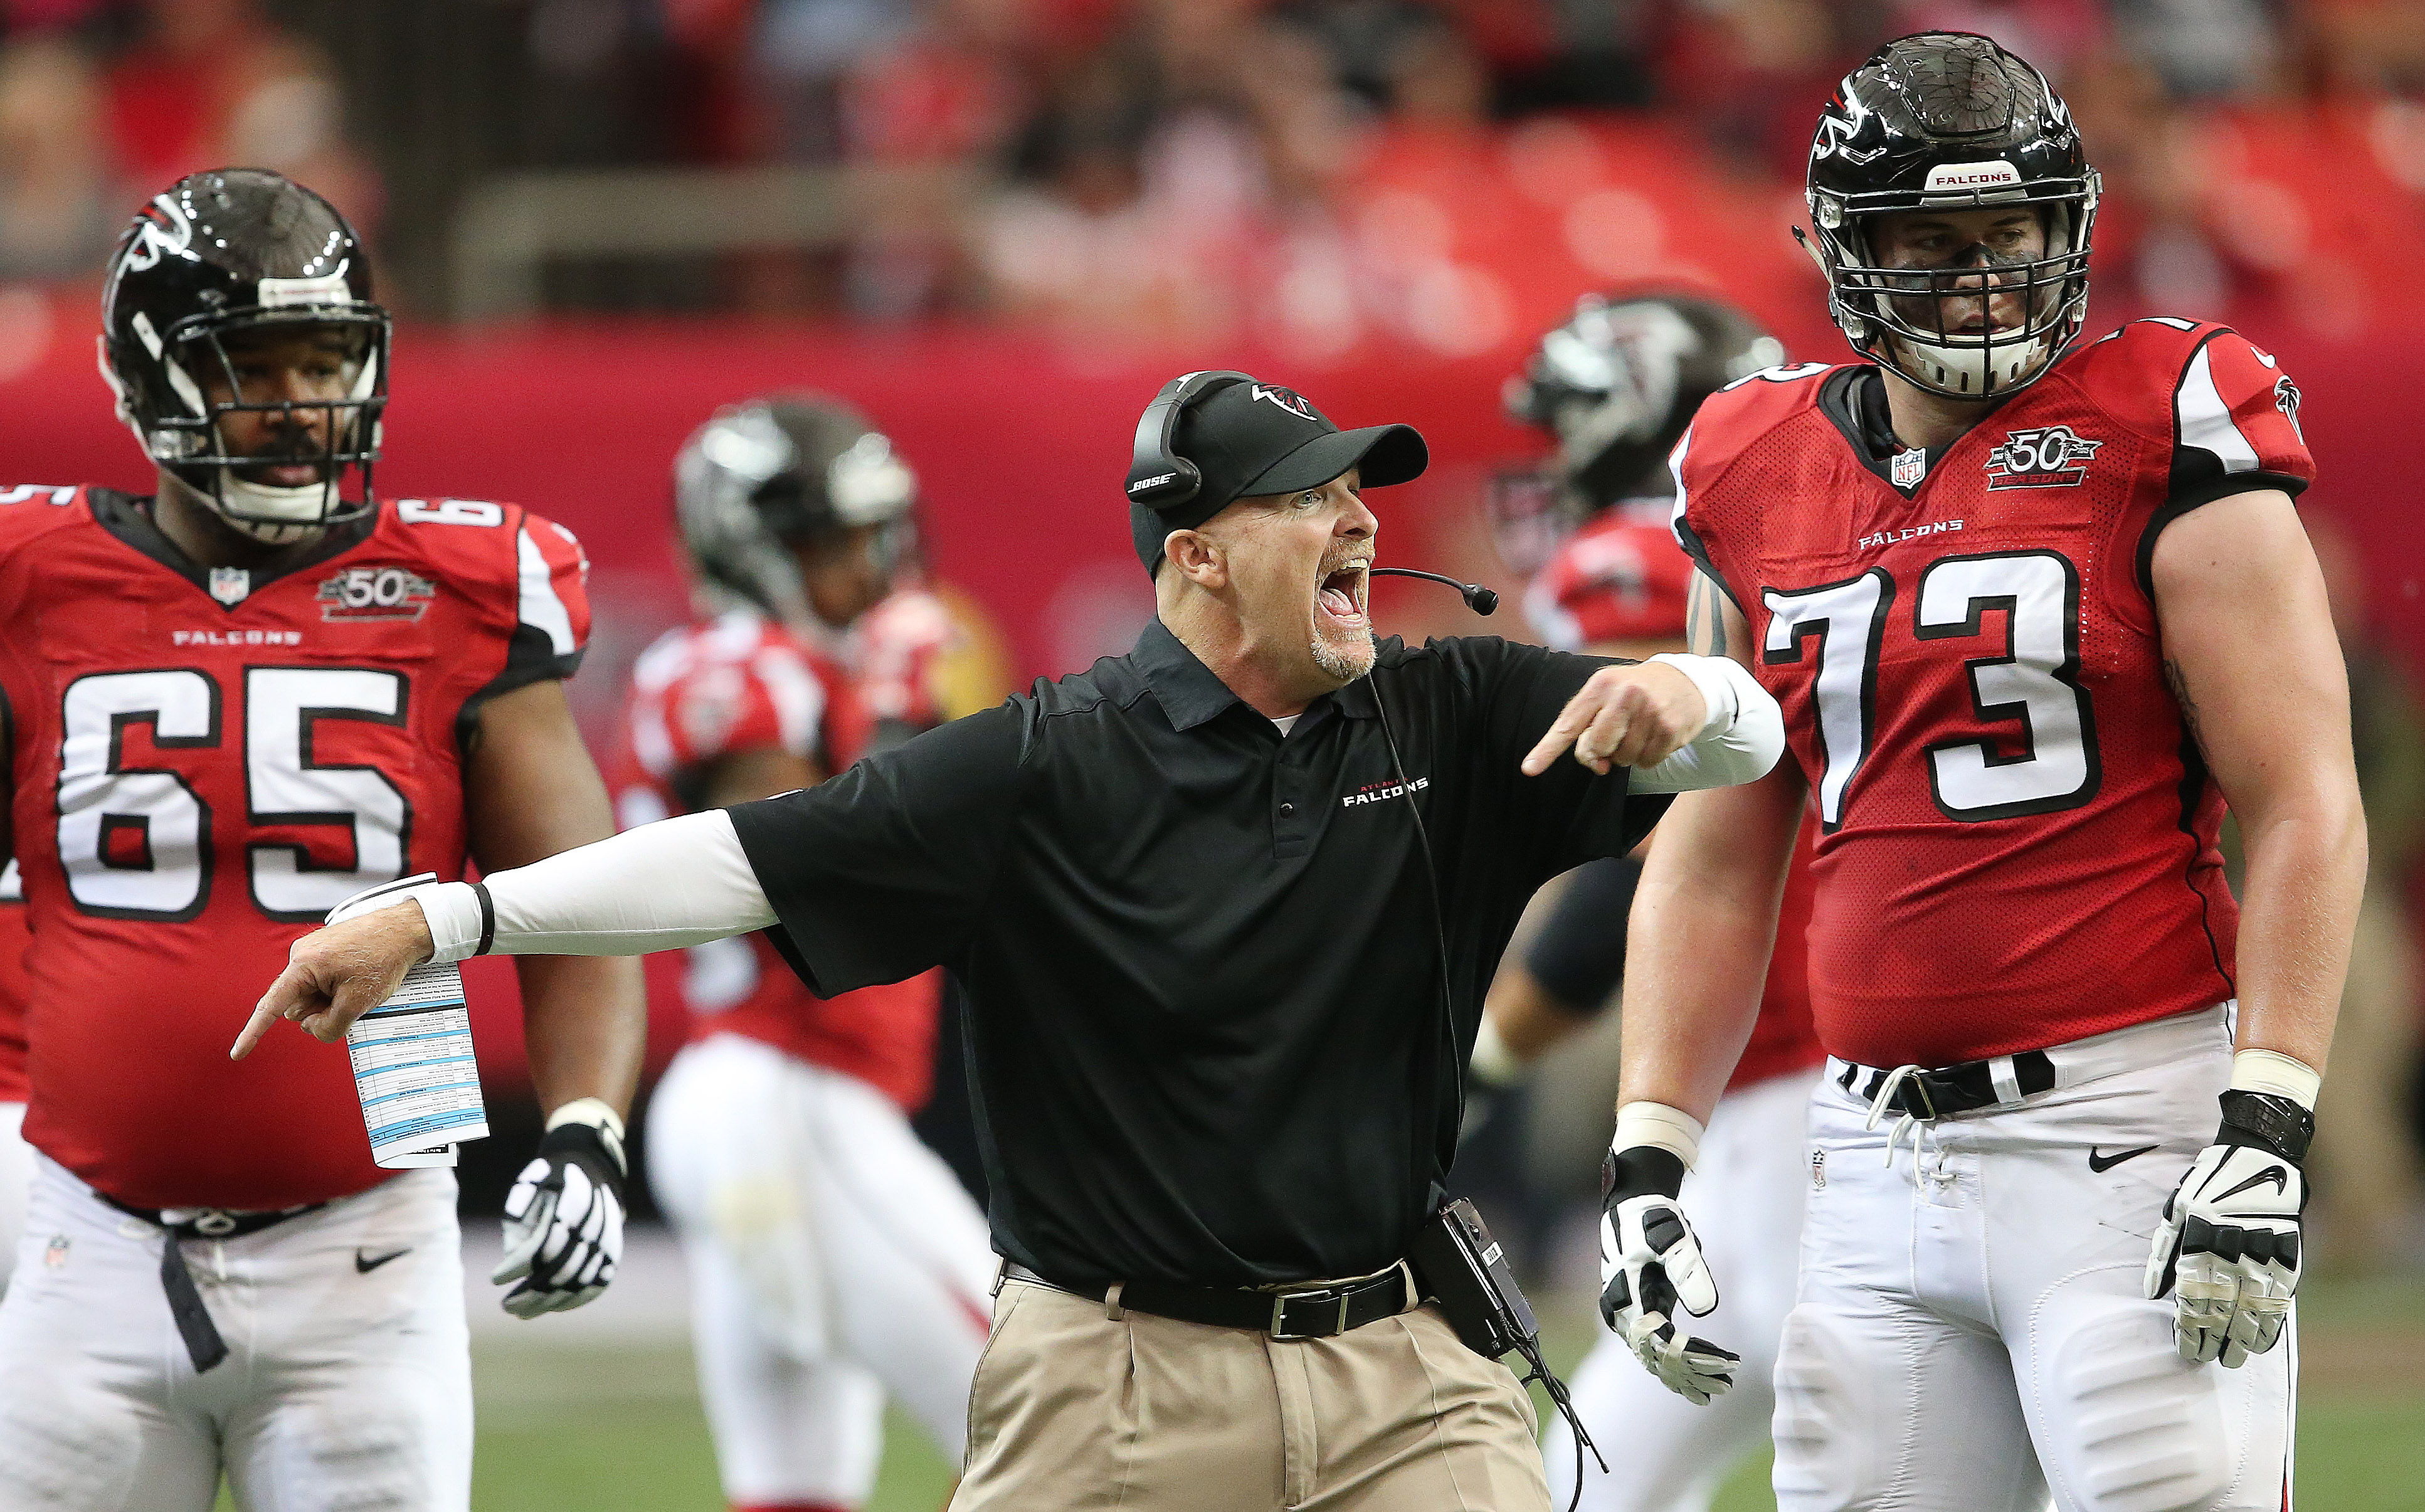 Atlanta Falcons head coach Dan Quinn speaks to his team after the Washington Redskins intercepted the ball during the first half of an NFL football game, Sunday, Oct. 11, 2015, in Atlanta. (AP Photo/John Bazemore)